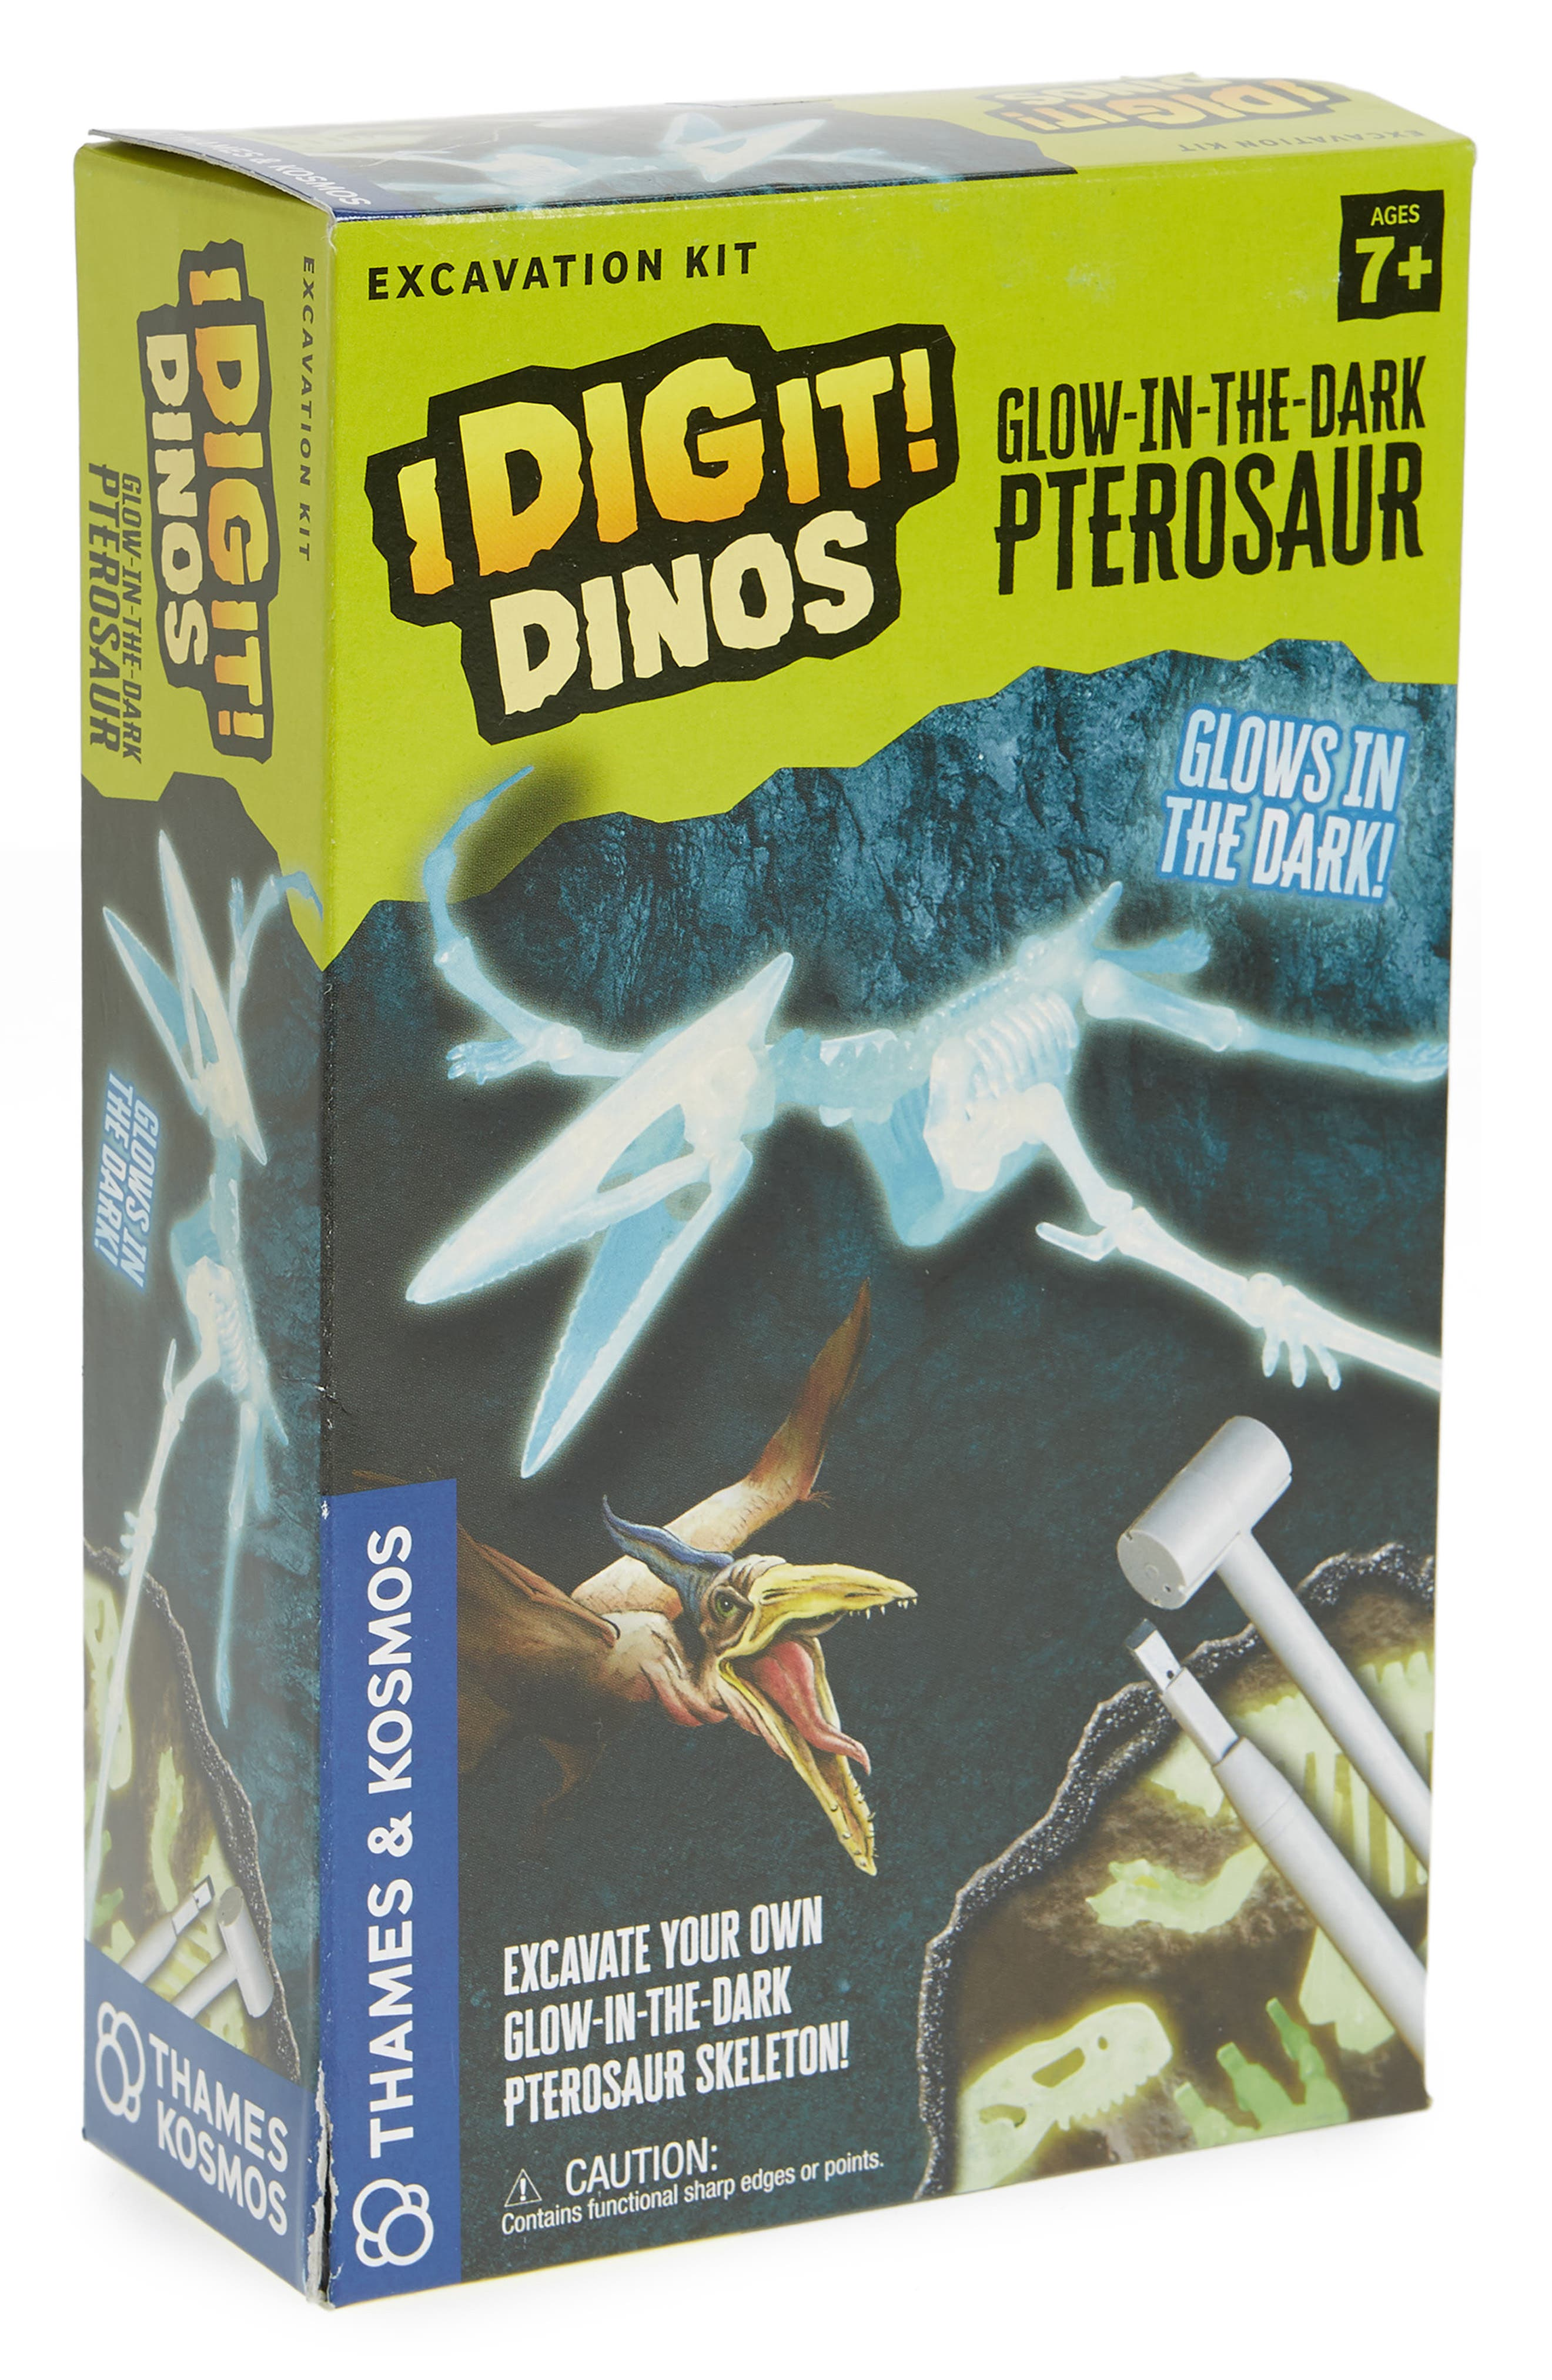 Main Image - Thames & Kosmos I Dig It! 16-Piece Glow in the Dark Pterosaur Excavation Kit